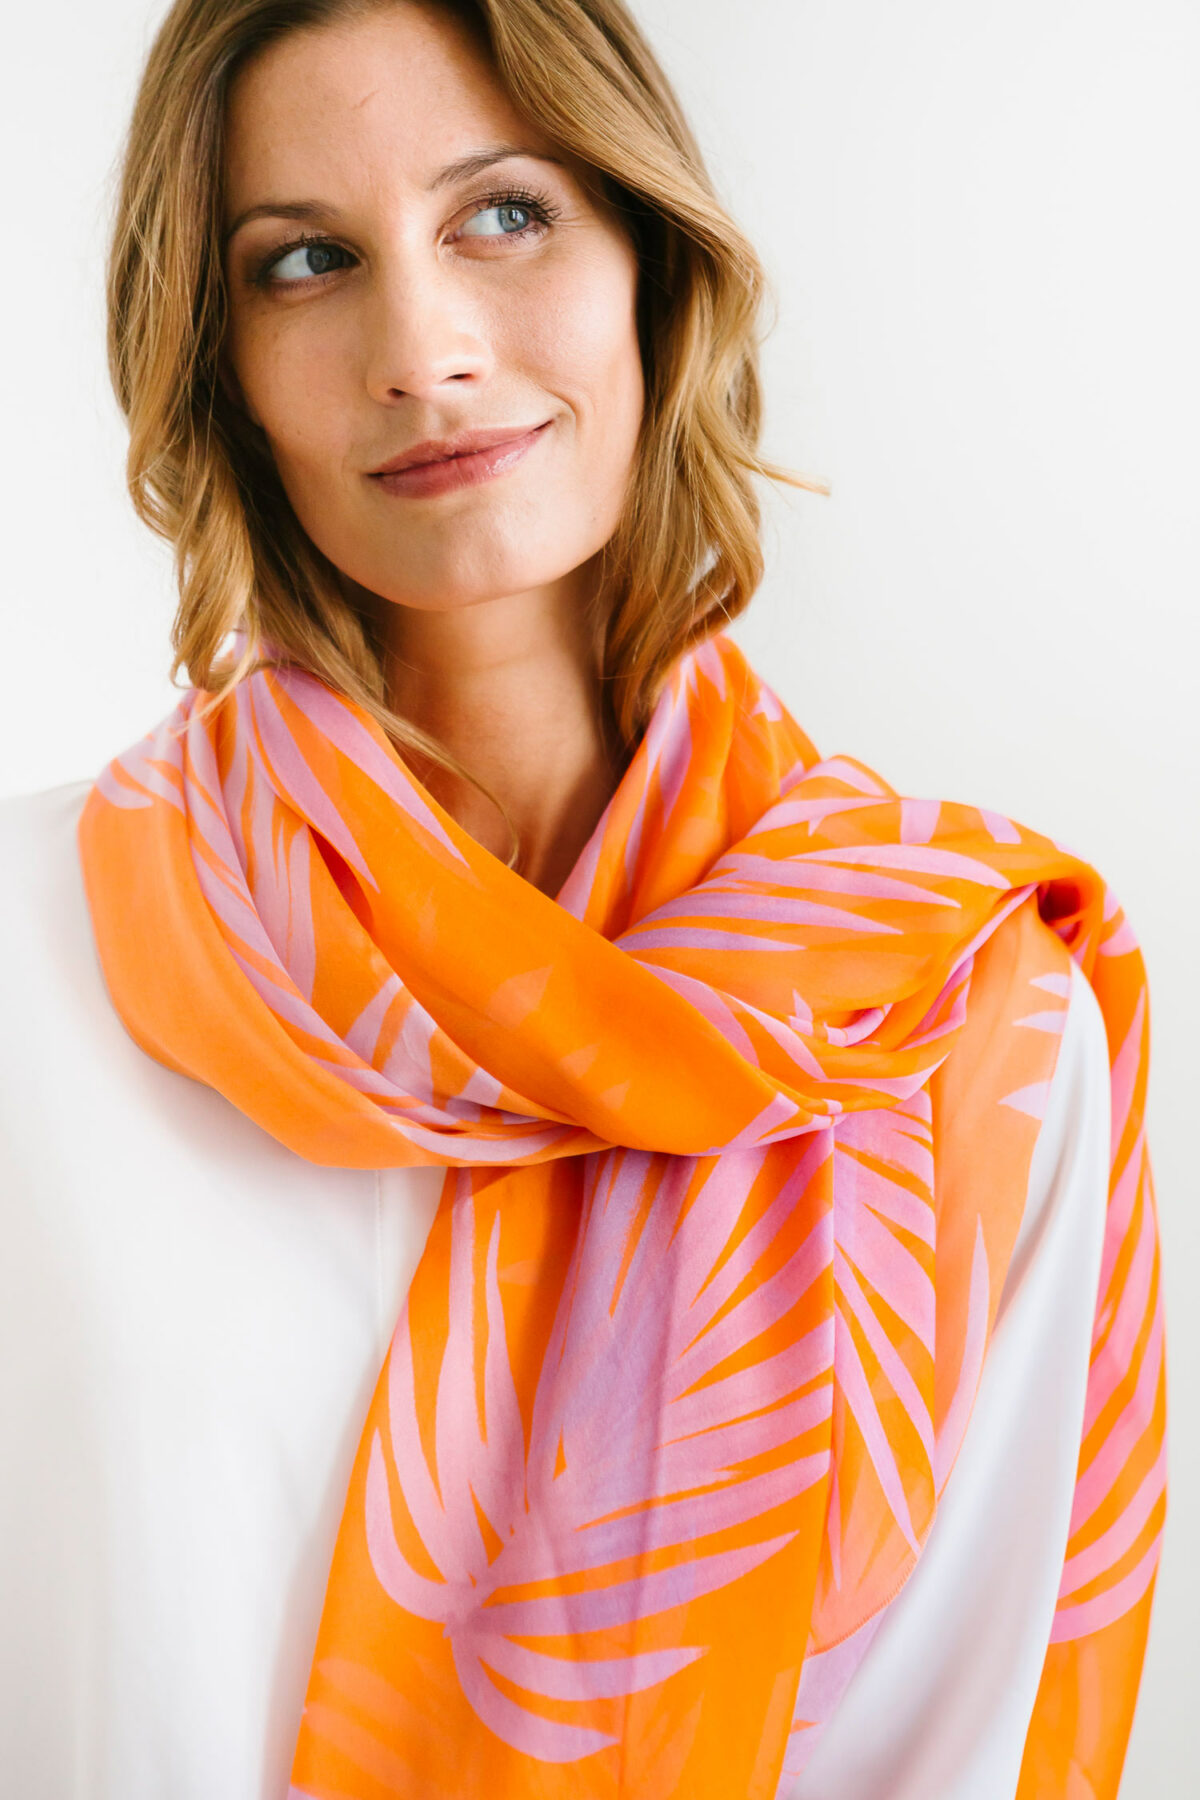 woman wearing an orange and pink scarf on her neck